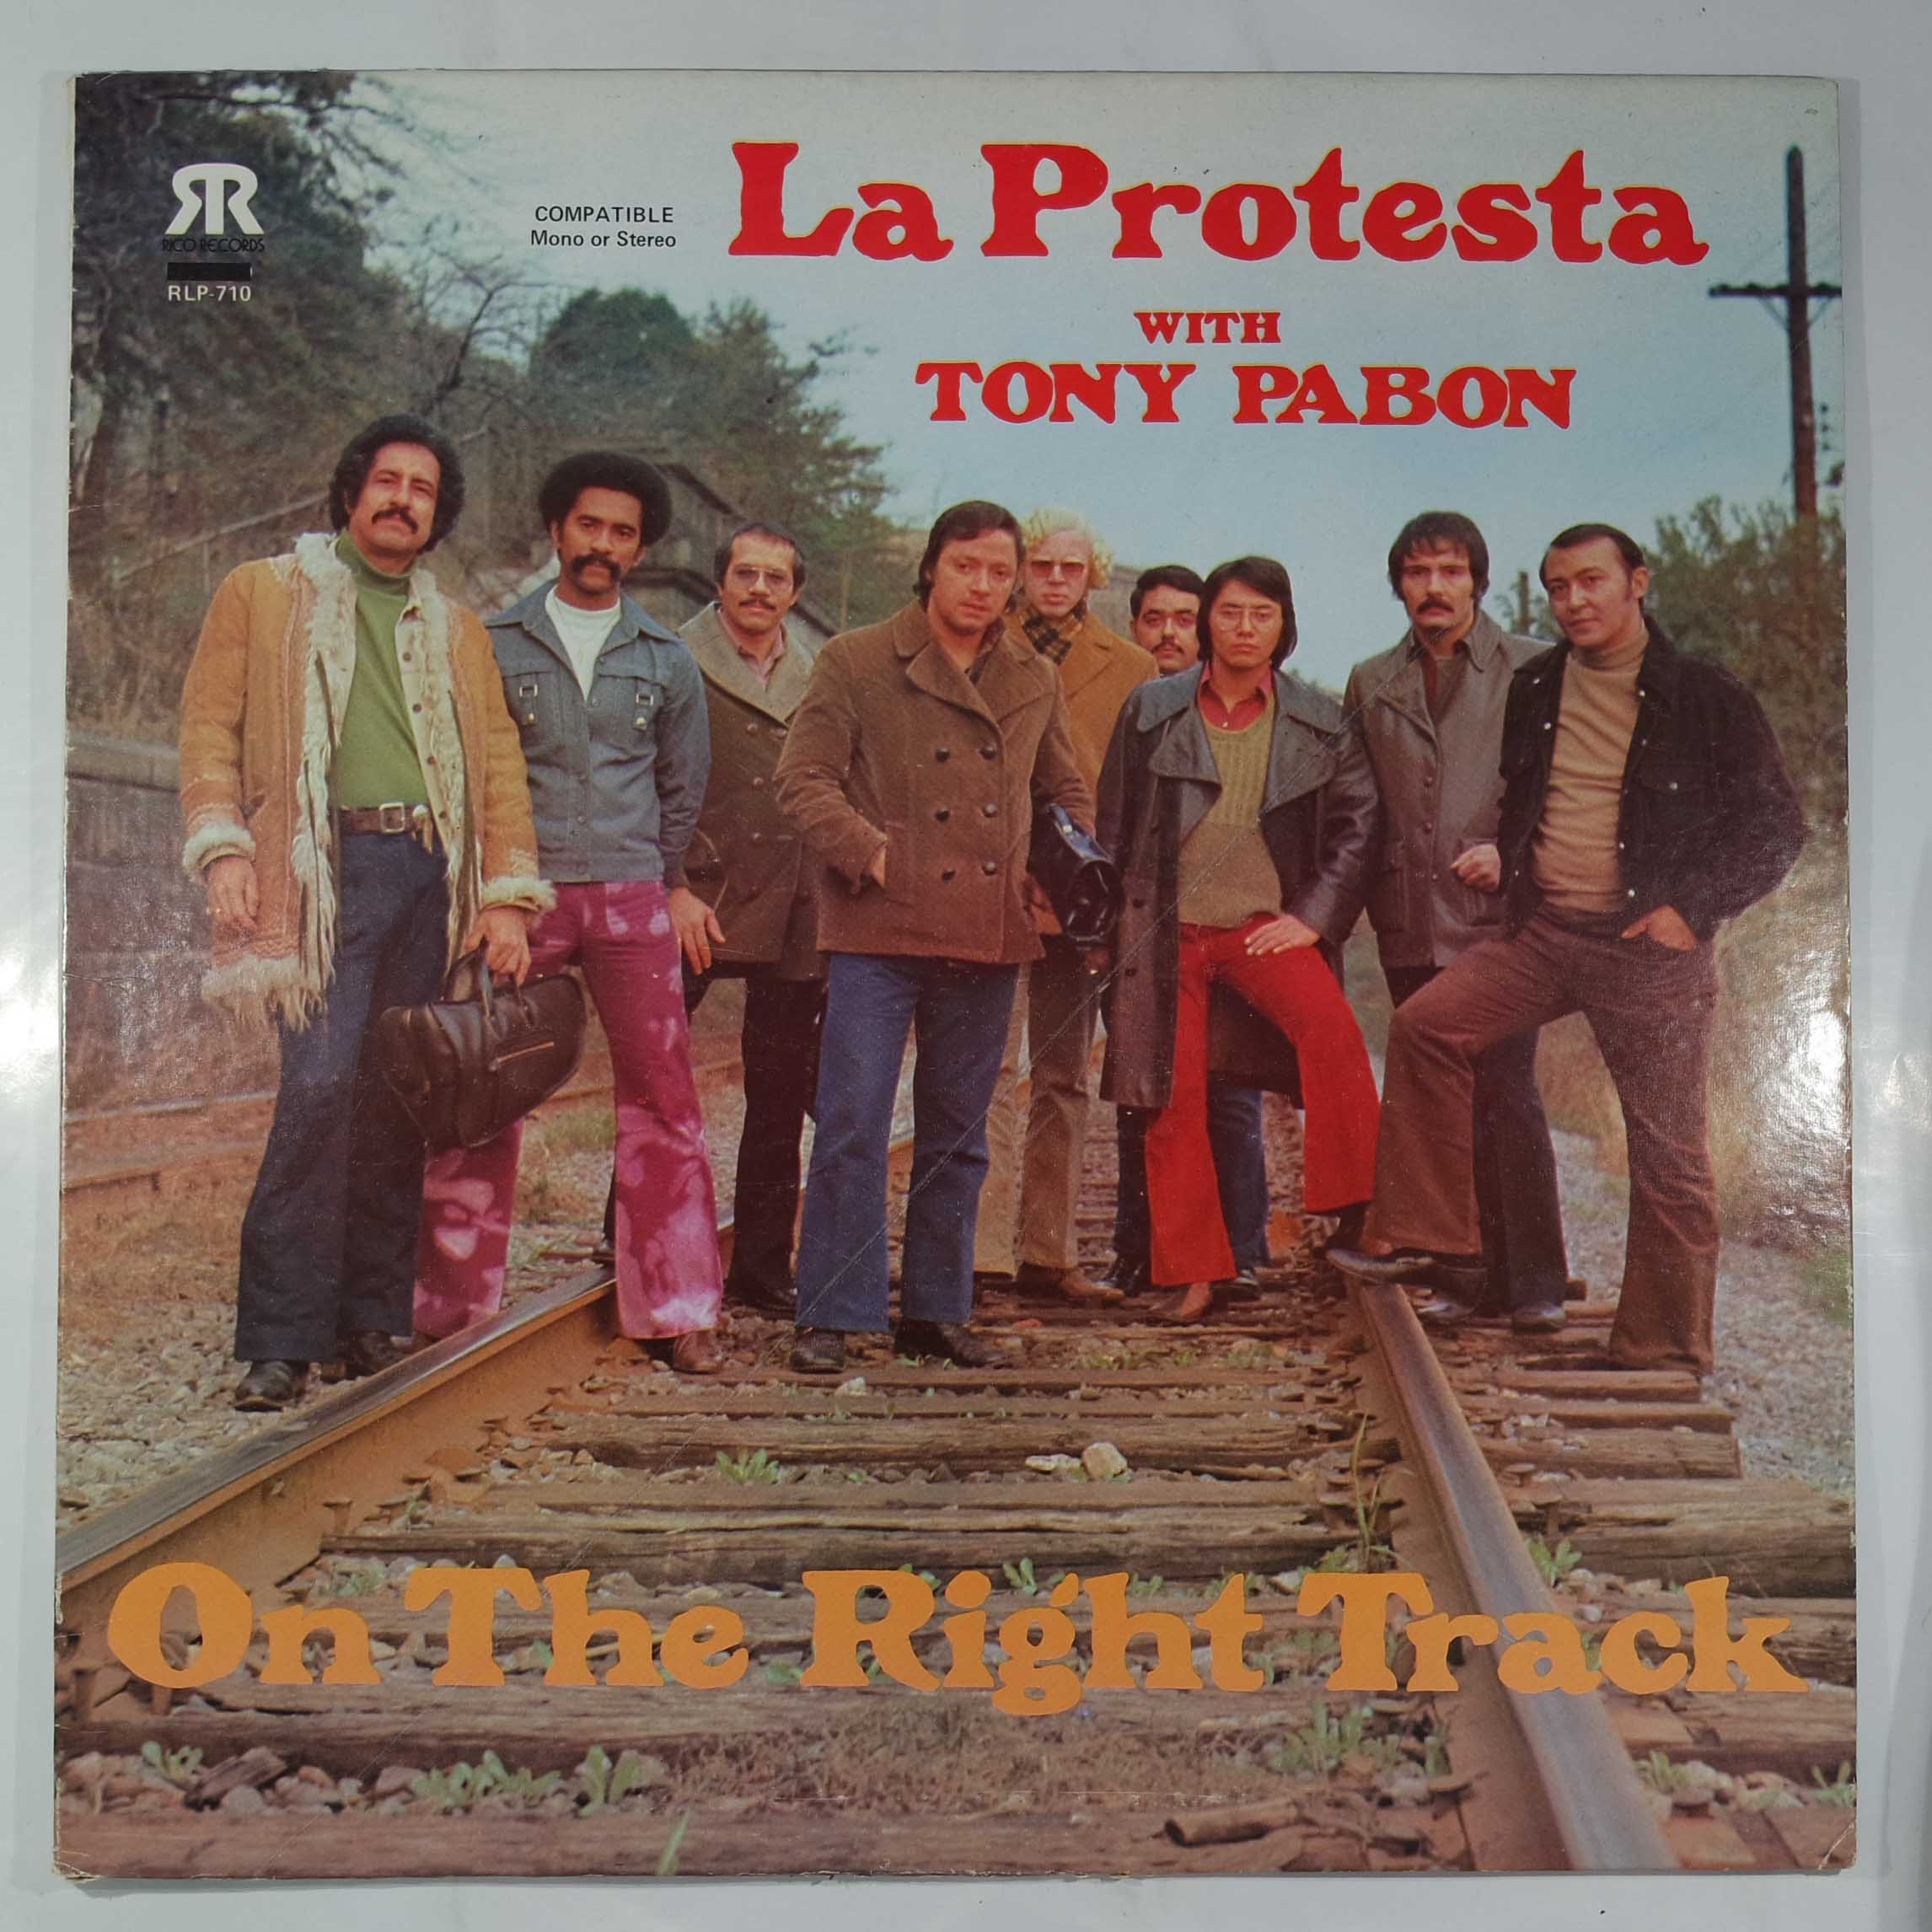 La Protesta with Tony Pabon On The Right Track